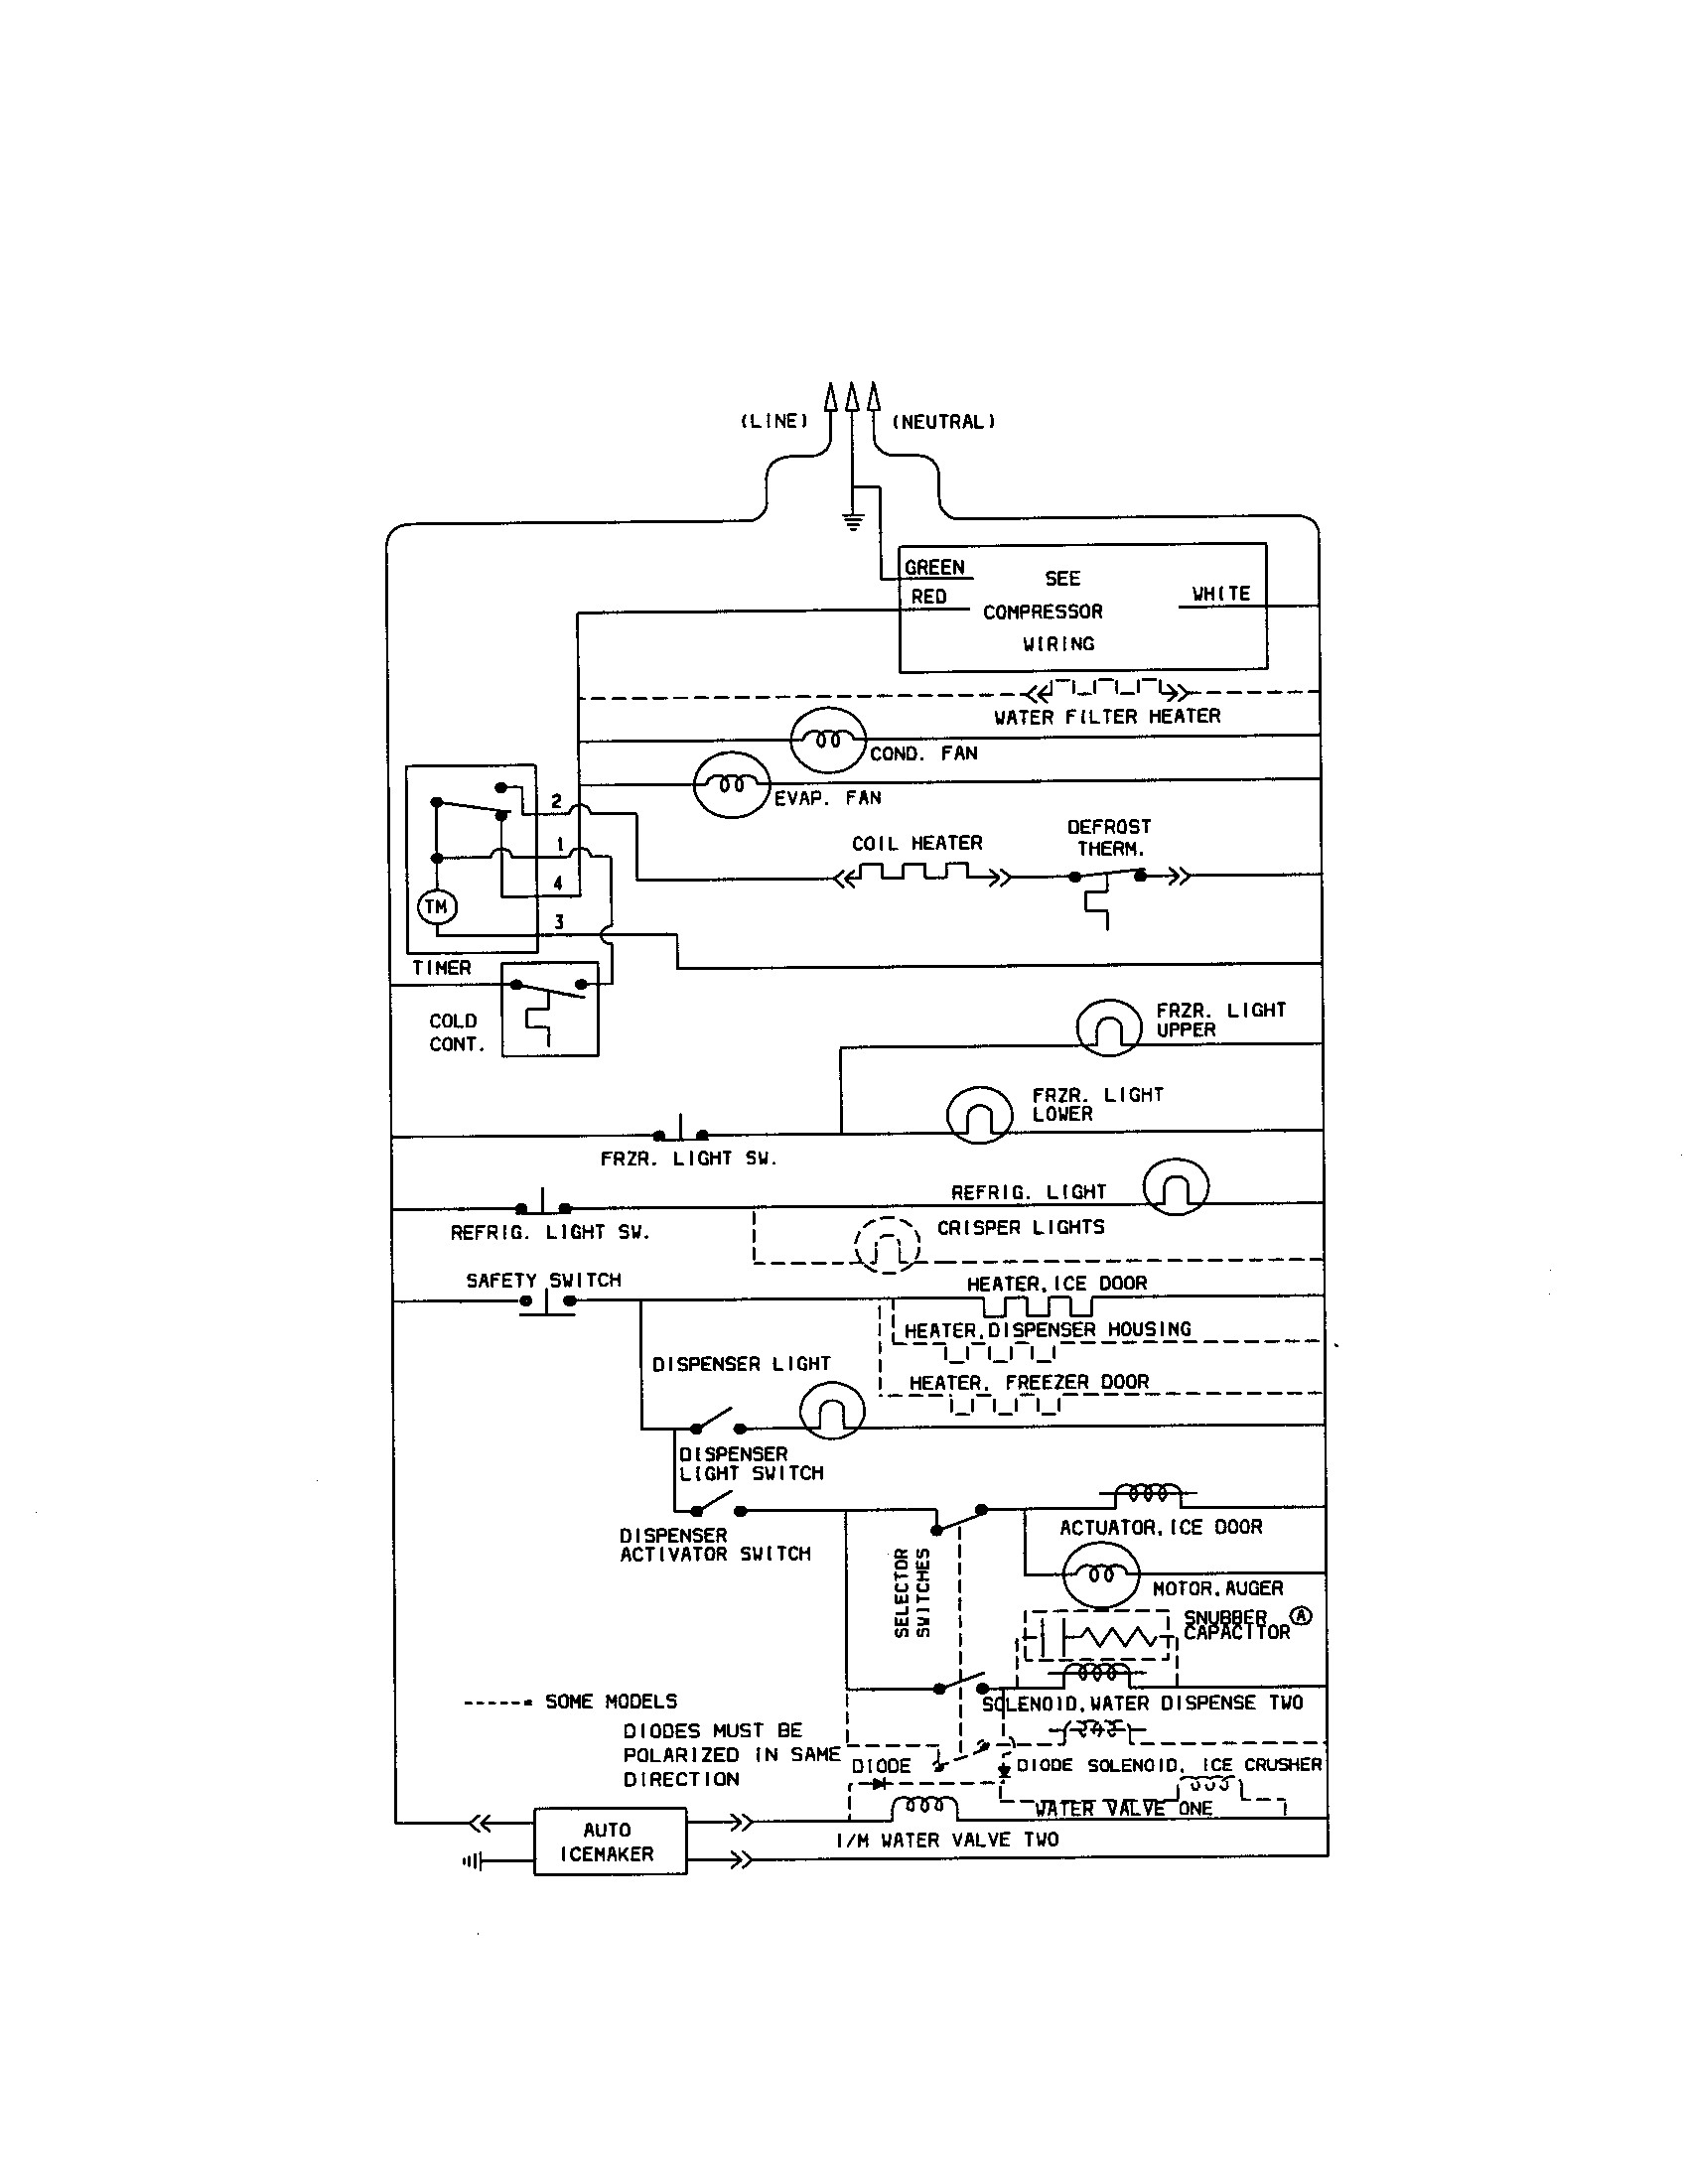 Kenmore Schematic Diagram - Wiring Diagrams Word on